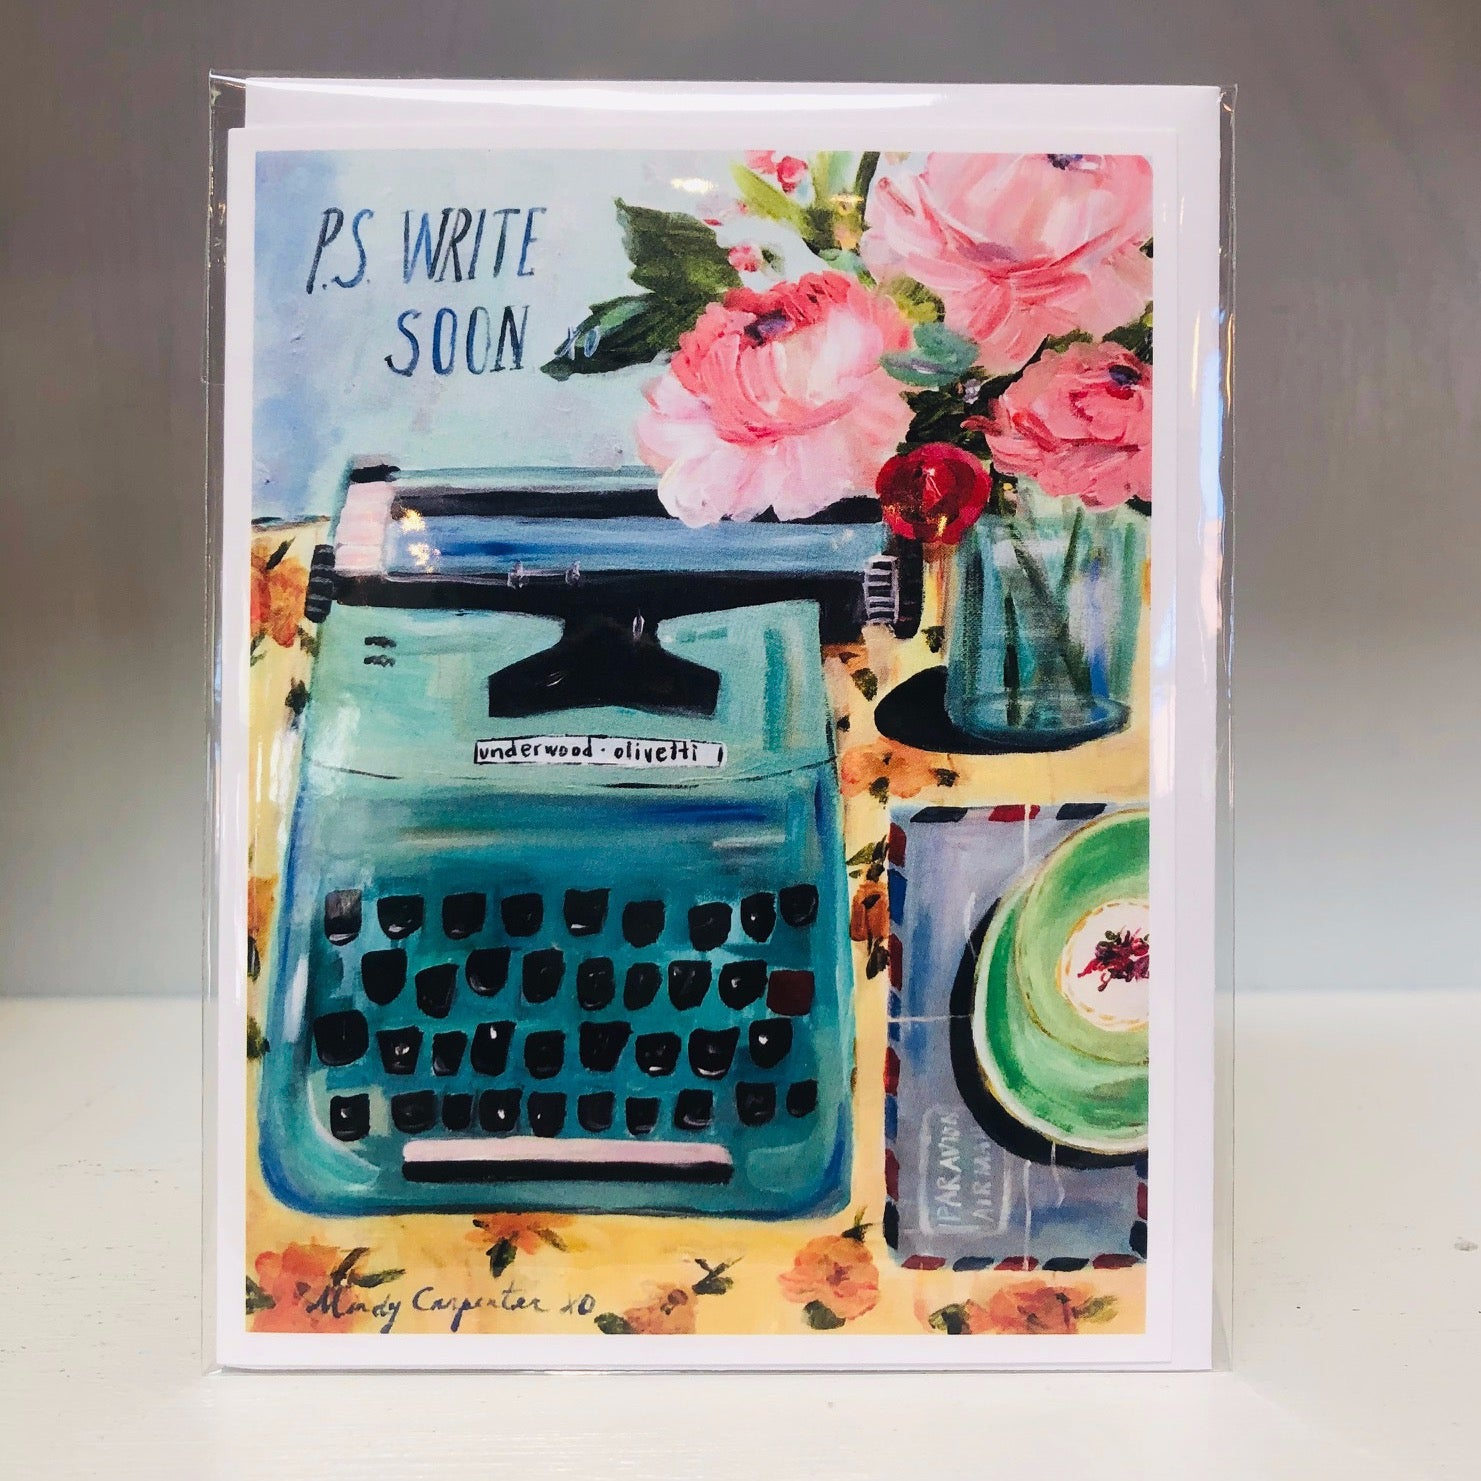 P.S. Write Soon Greeting Card